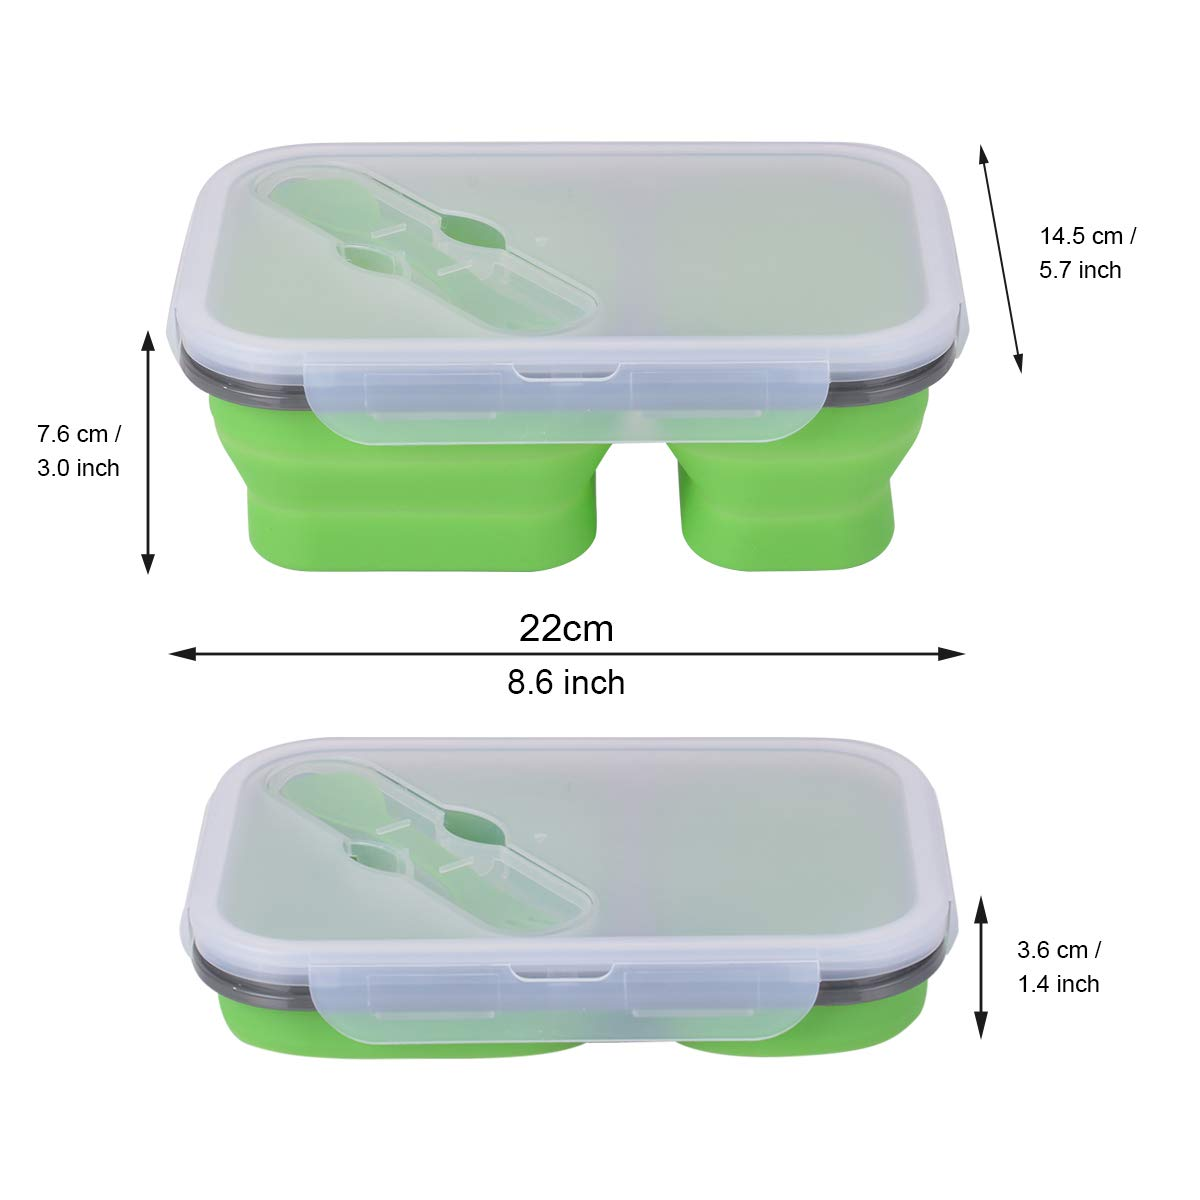 Amazon Hot Selling Silicone Folding Collapsible Lunch Box Food Container Kids Fold Microwave Eco Silicon Box Lunch